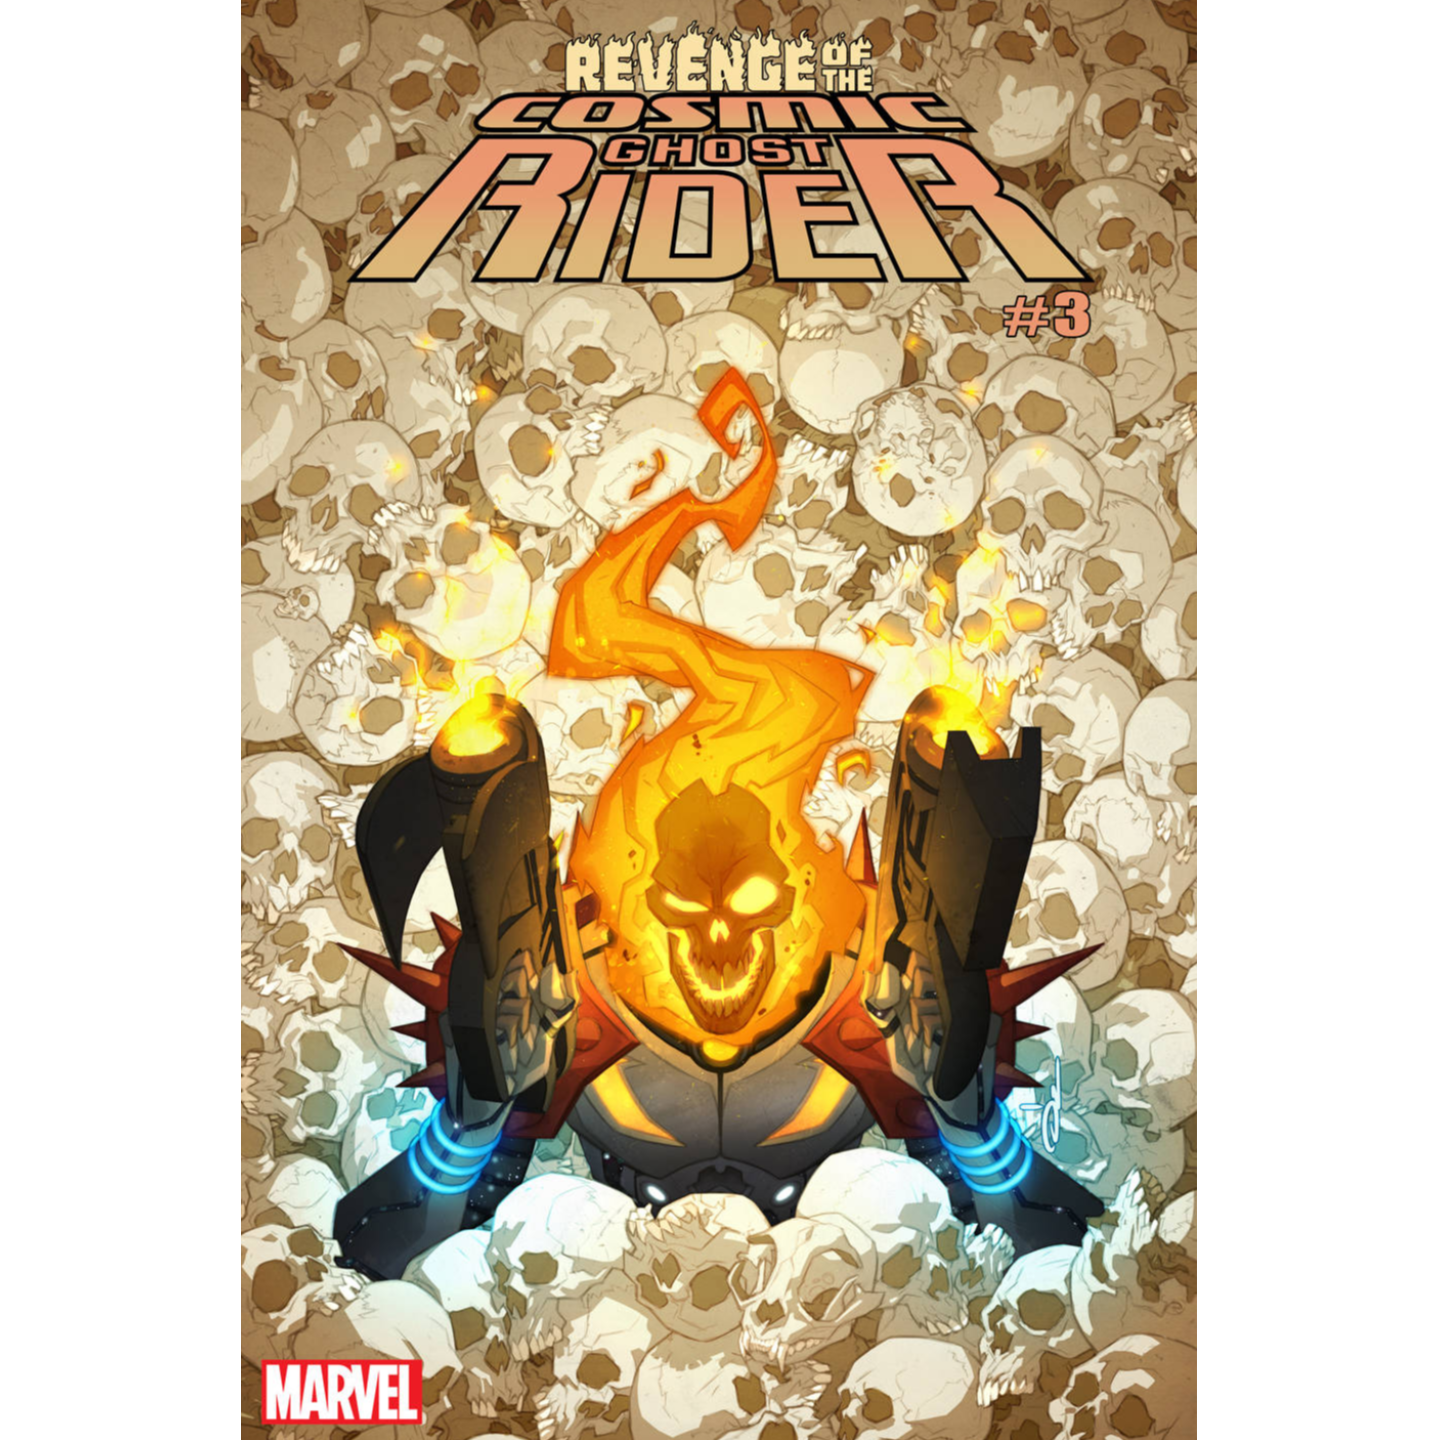 REVENGE OF THE COSMIC GHOST RIDER #3 - YILDRUM VAR